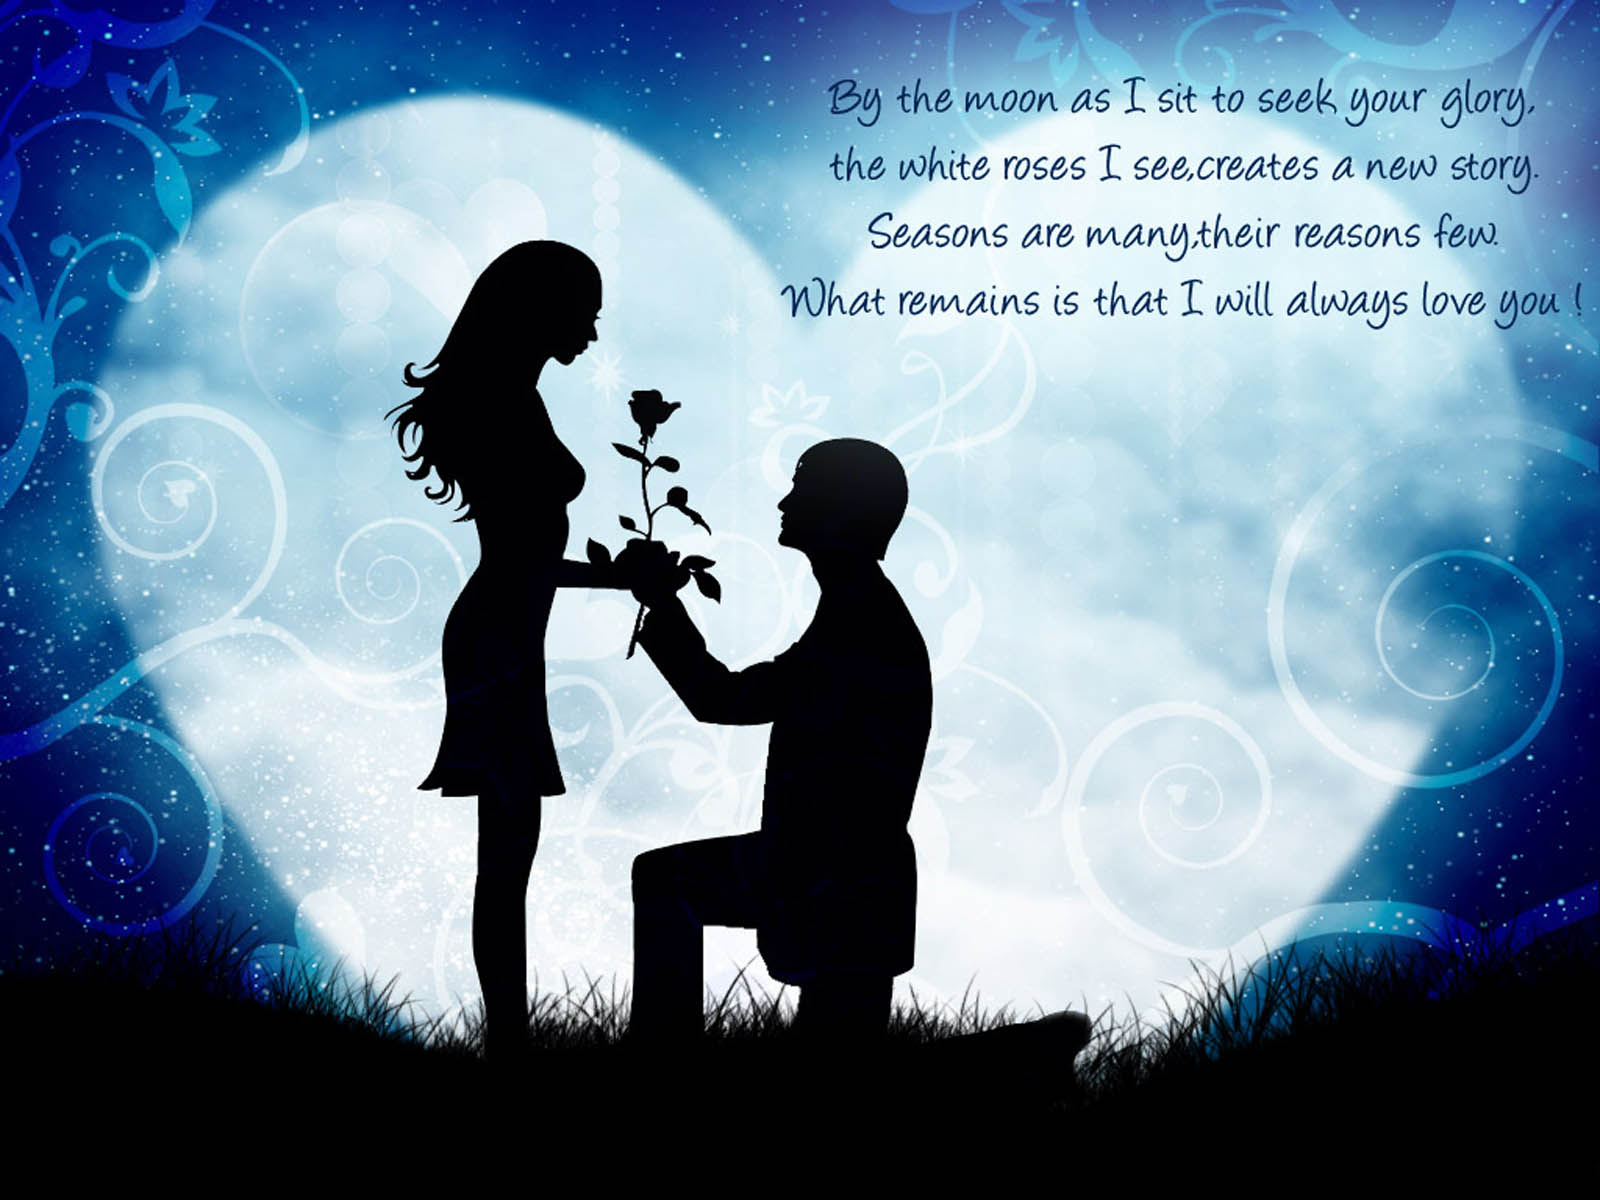 Love Wallpaper In Relationship : wallpapers: Love Quotes Desktop Wallpapers